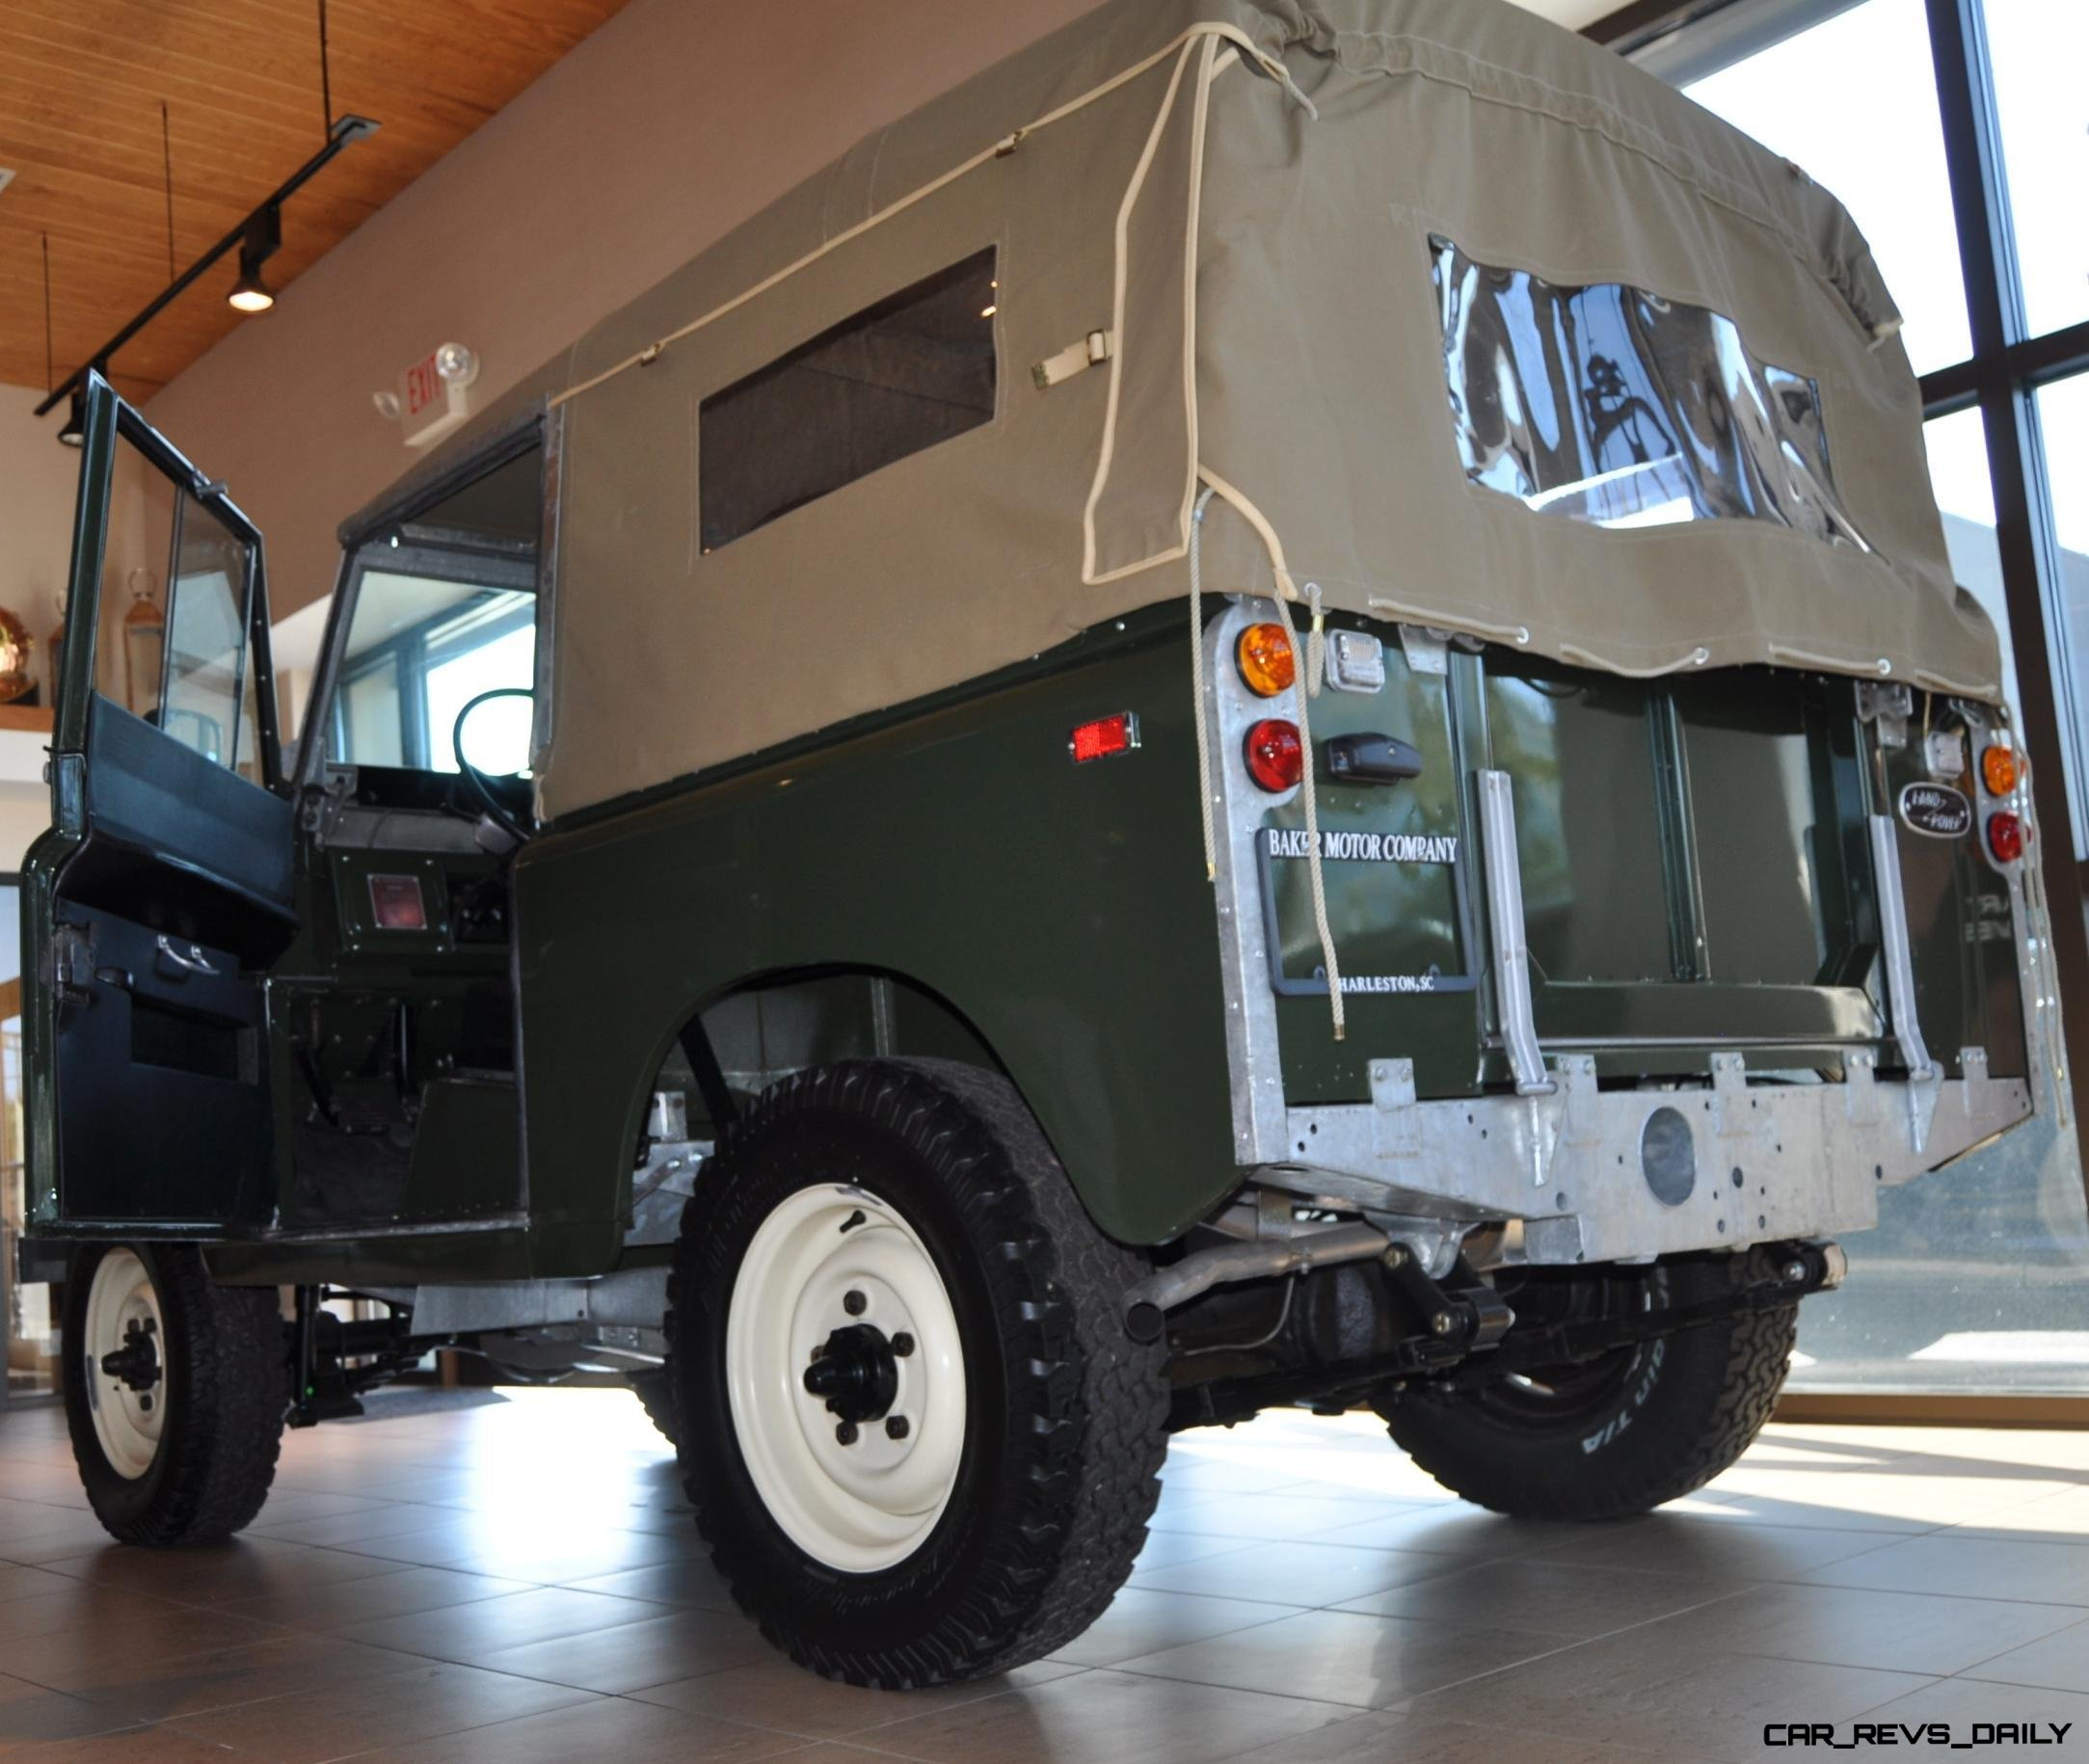 Land Rover For Sale Near Me >> Video Walk-around and Photos - Near-Mint 1969 Land Rover Series II Defender